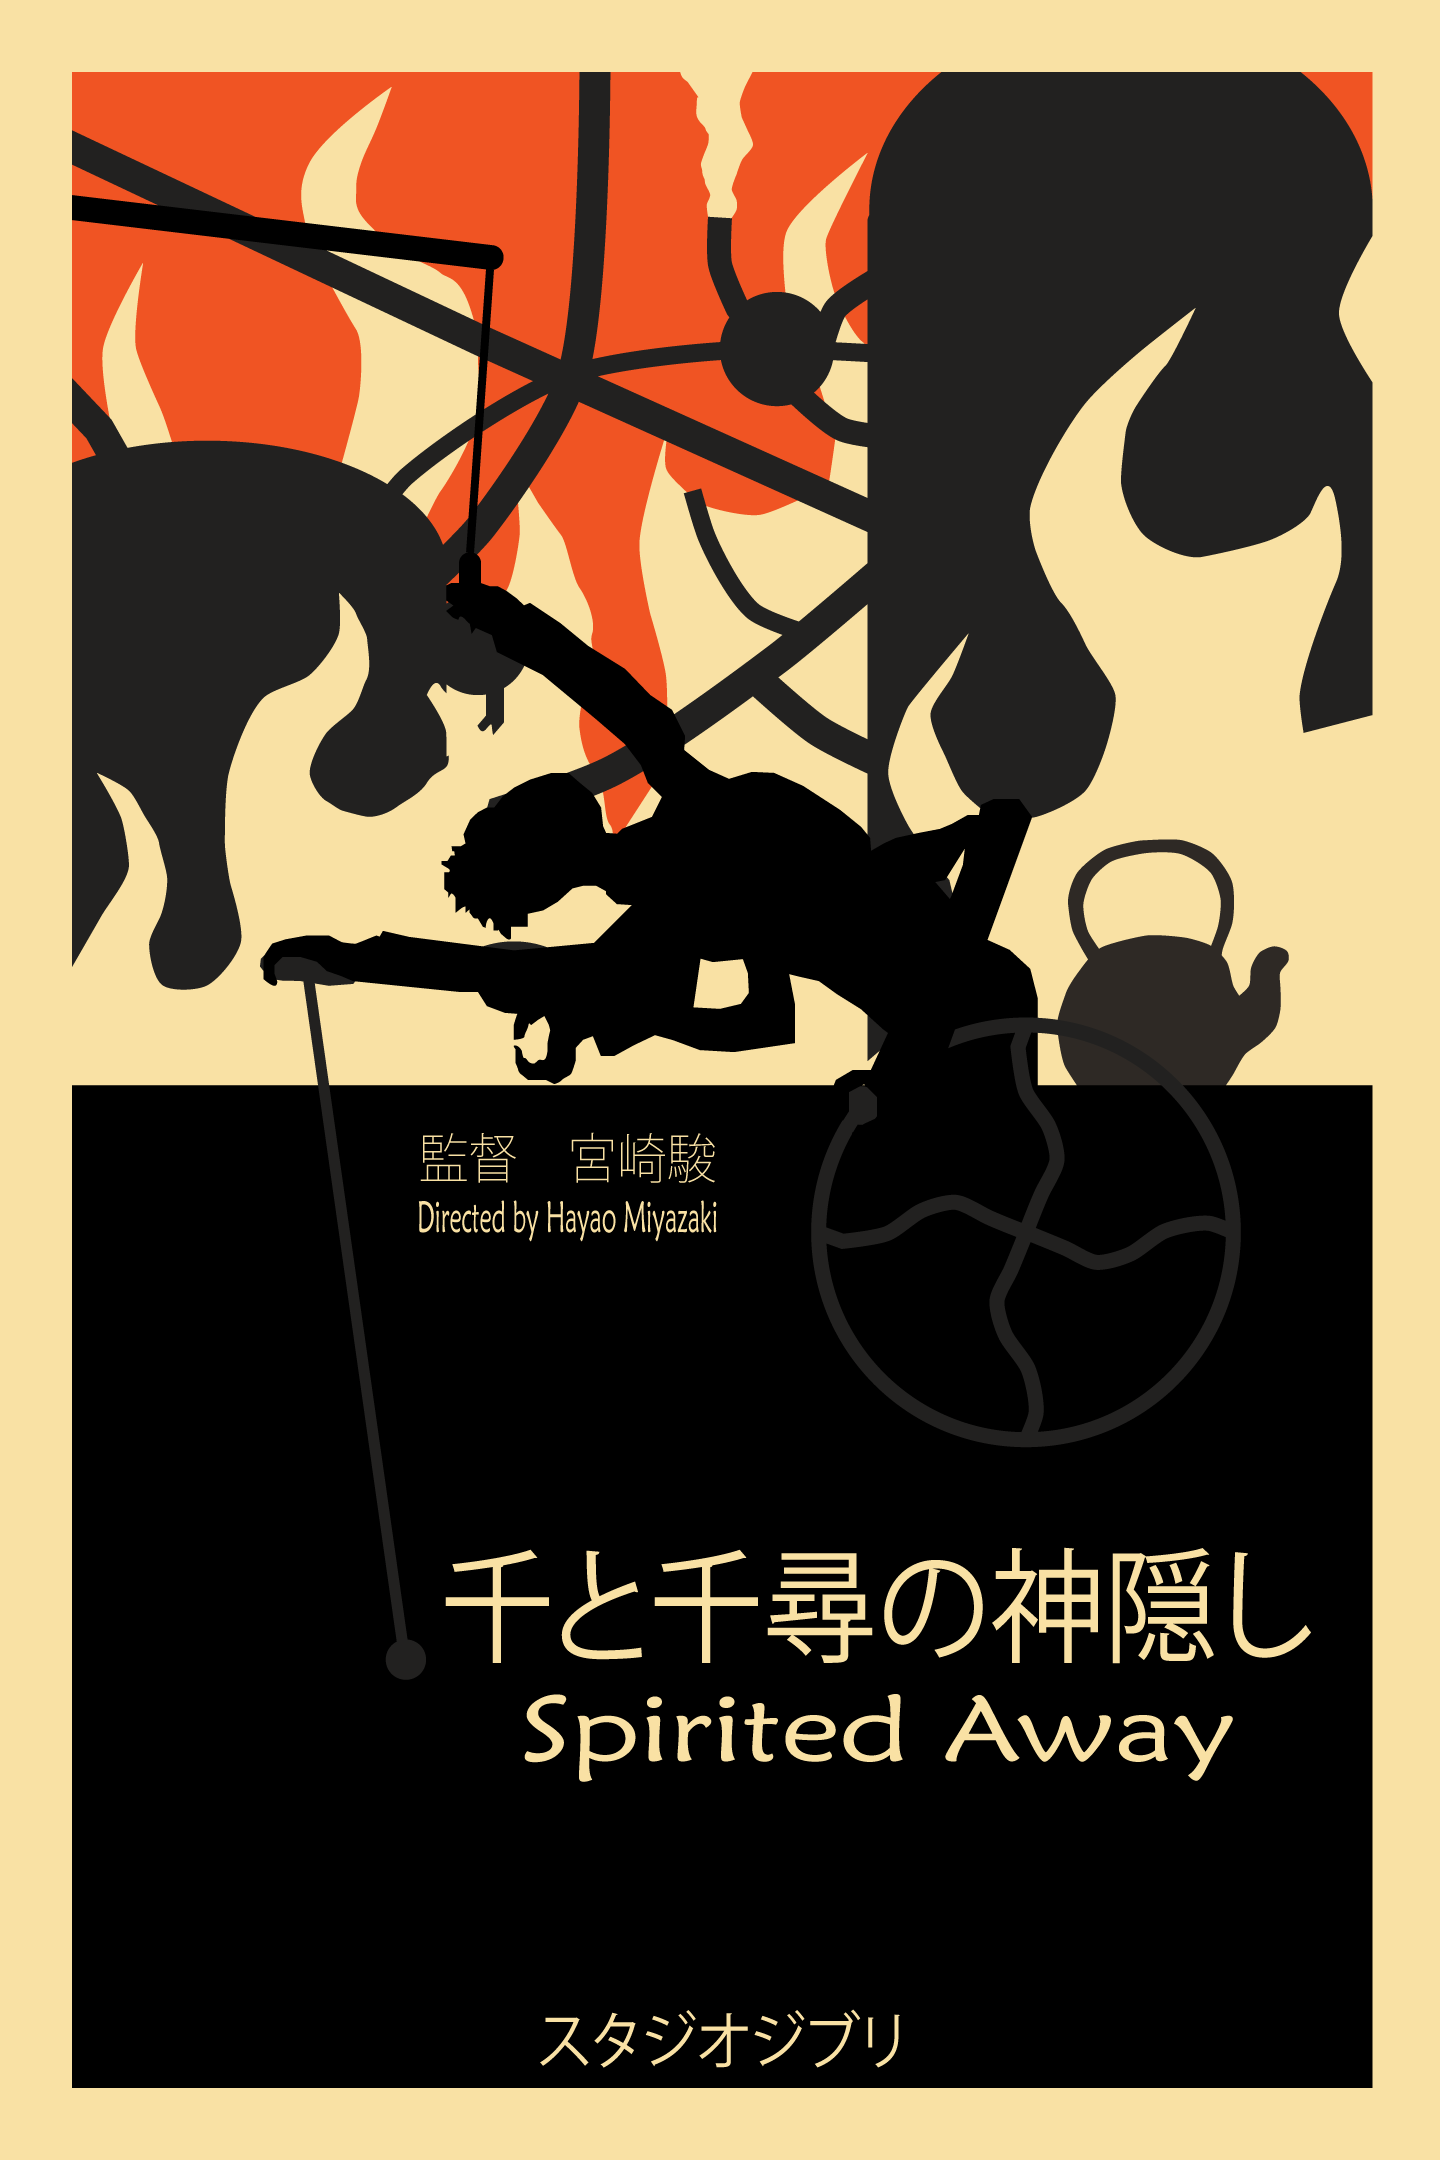 an analysis of the movie spirited away Keywords: spirited away film analysis, spirited away japanese history, spirited away symbolism the protagonist of the film, chihiro, has lived a pampered life in the city and is naive and unprepared for adulthood.